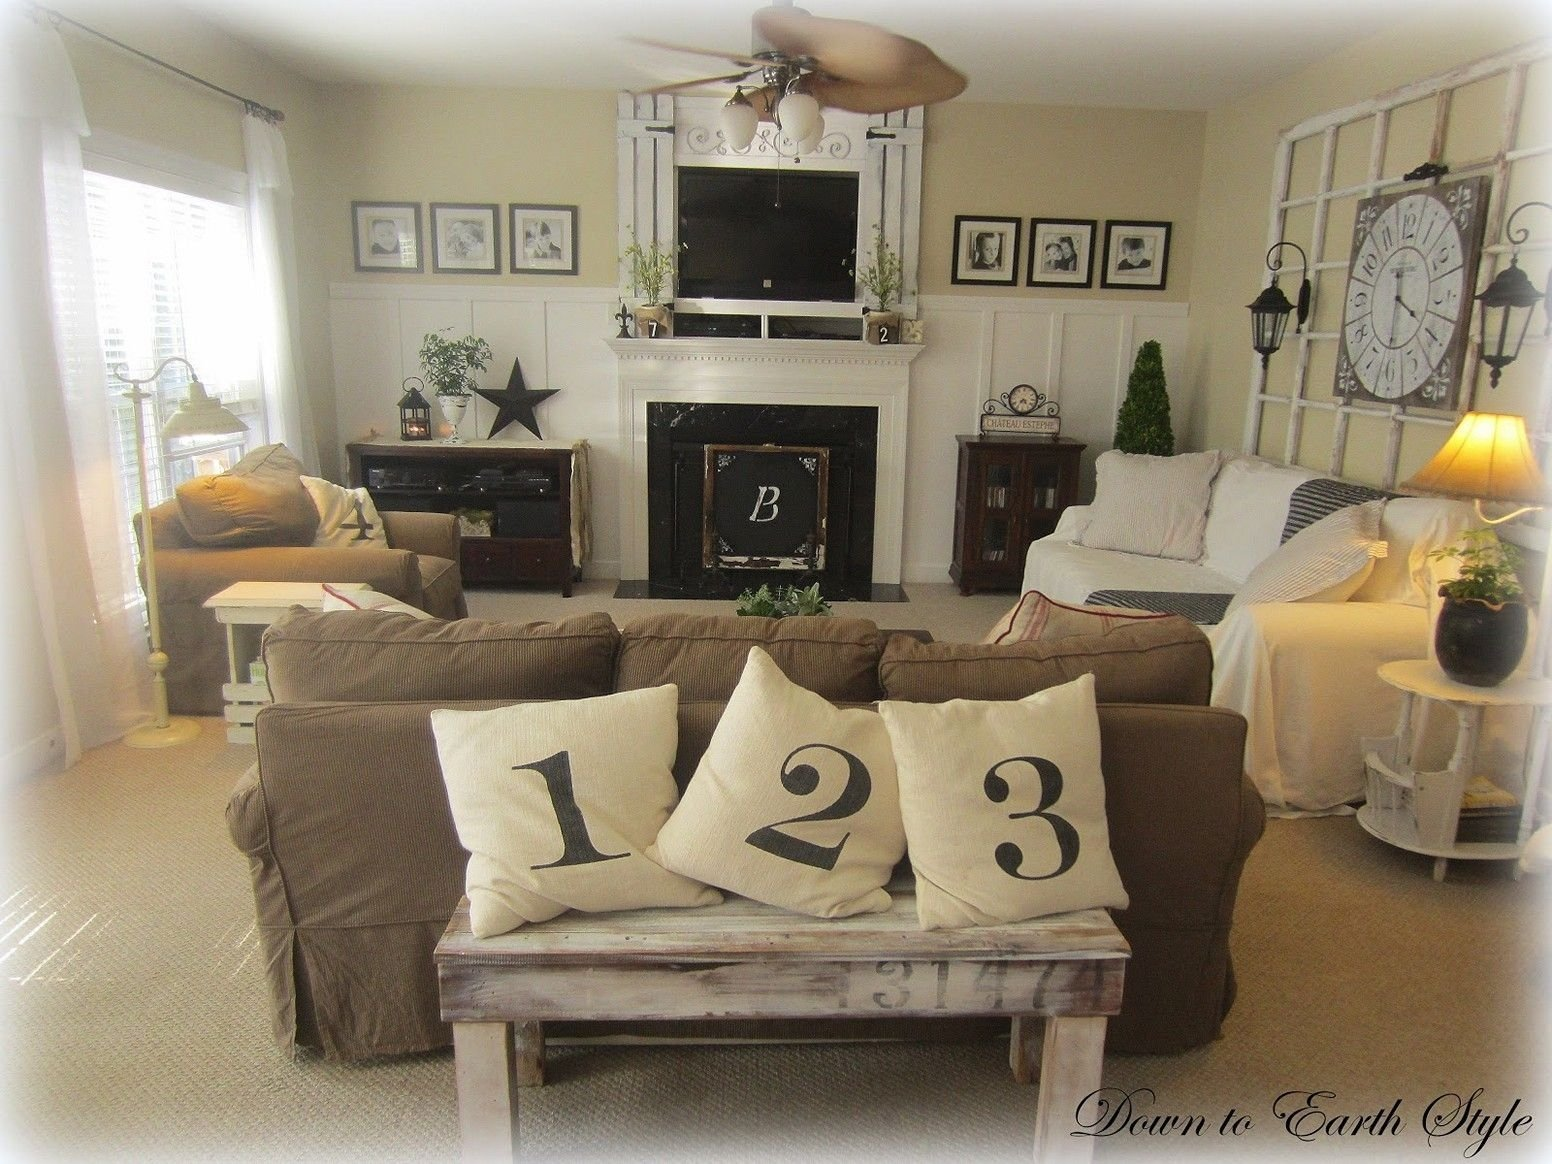 10 Fabulous Country Living Room Decorating Ideas country decorating ideas for living room home design ideas 2020